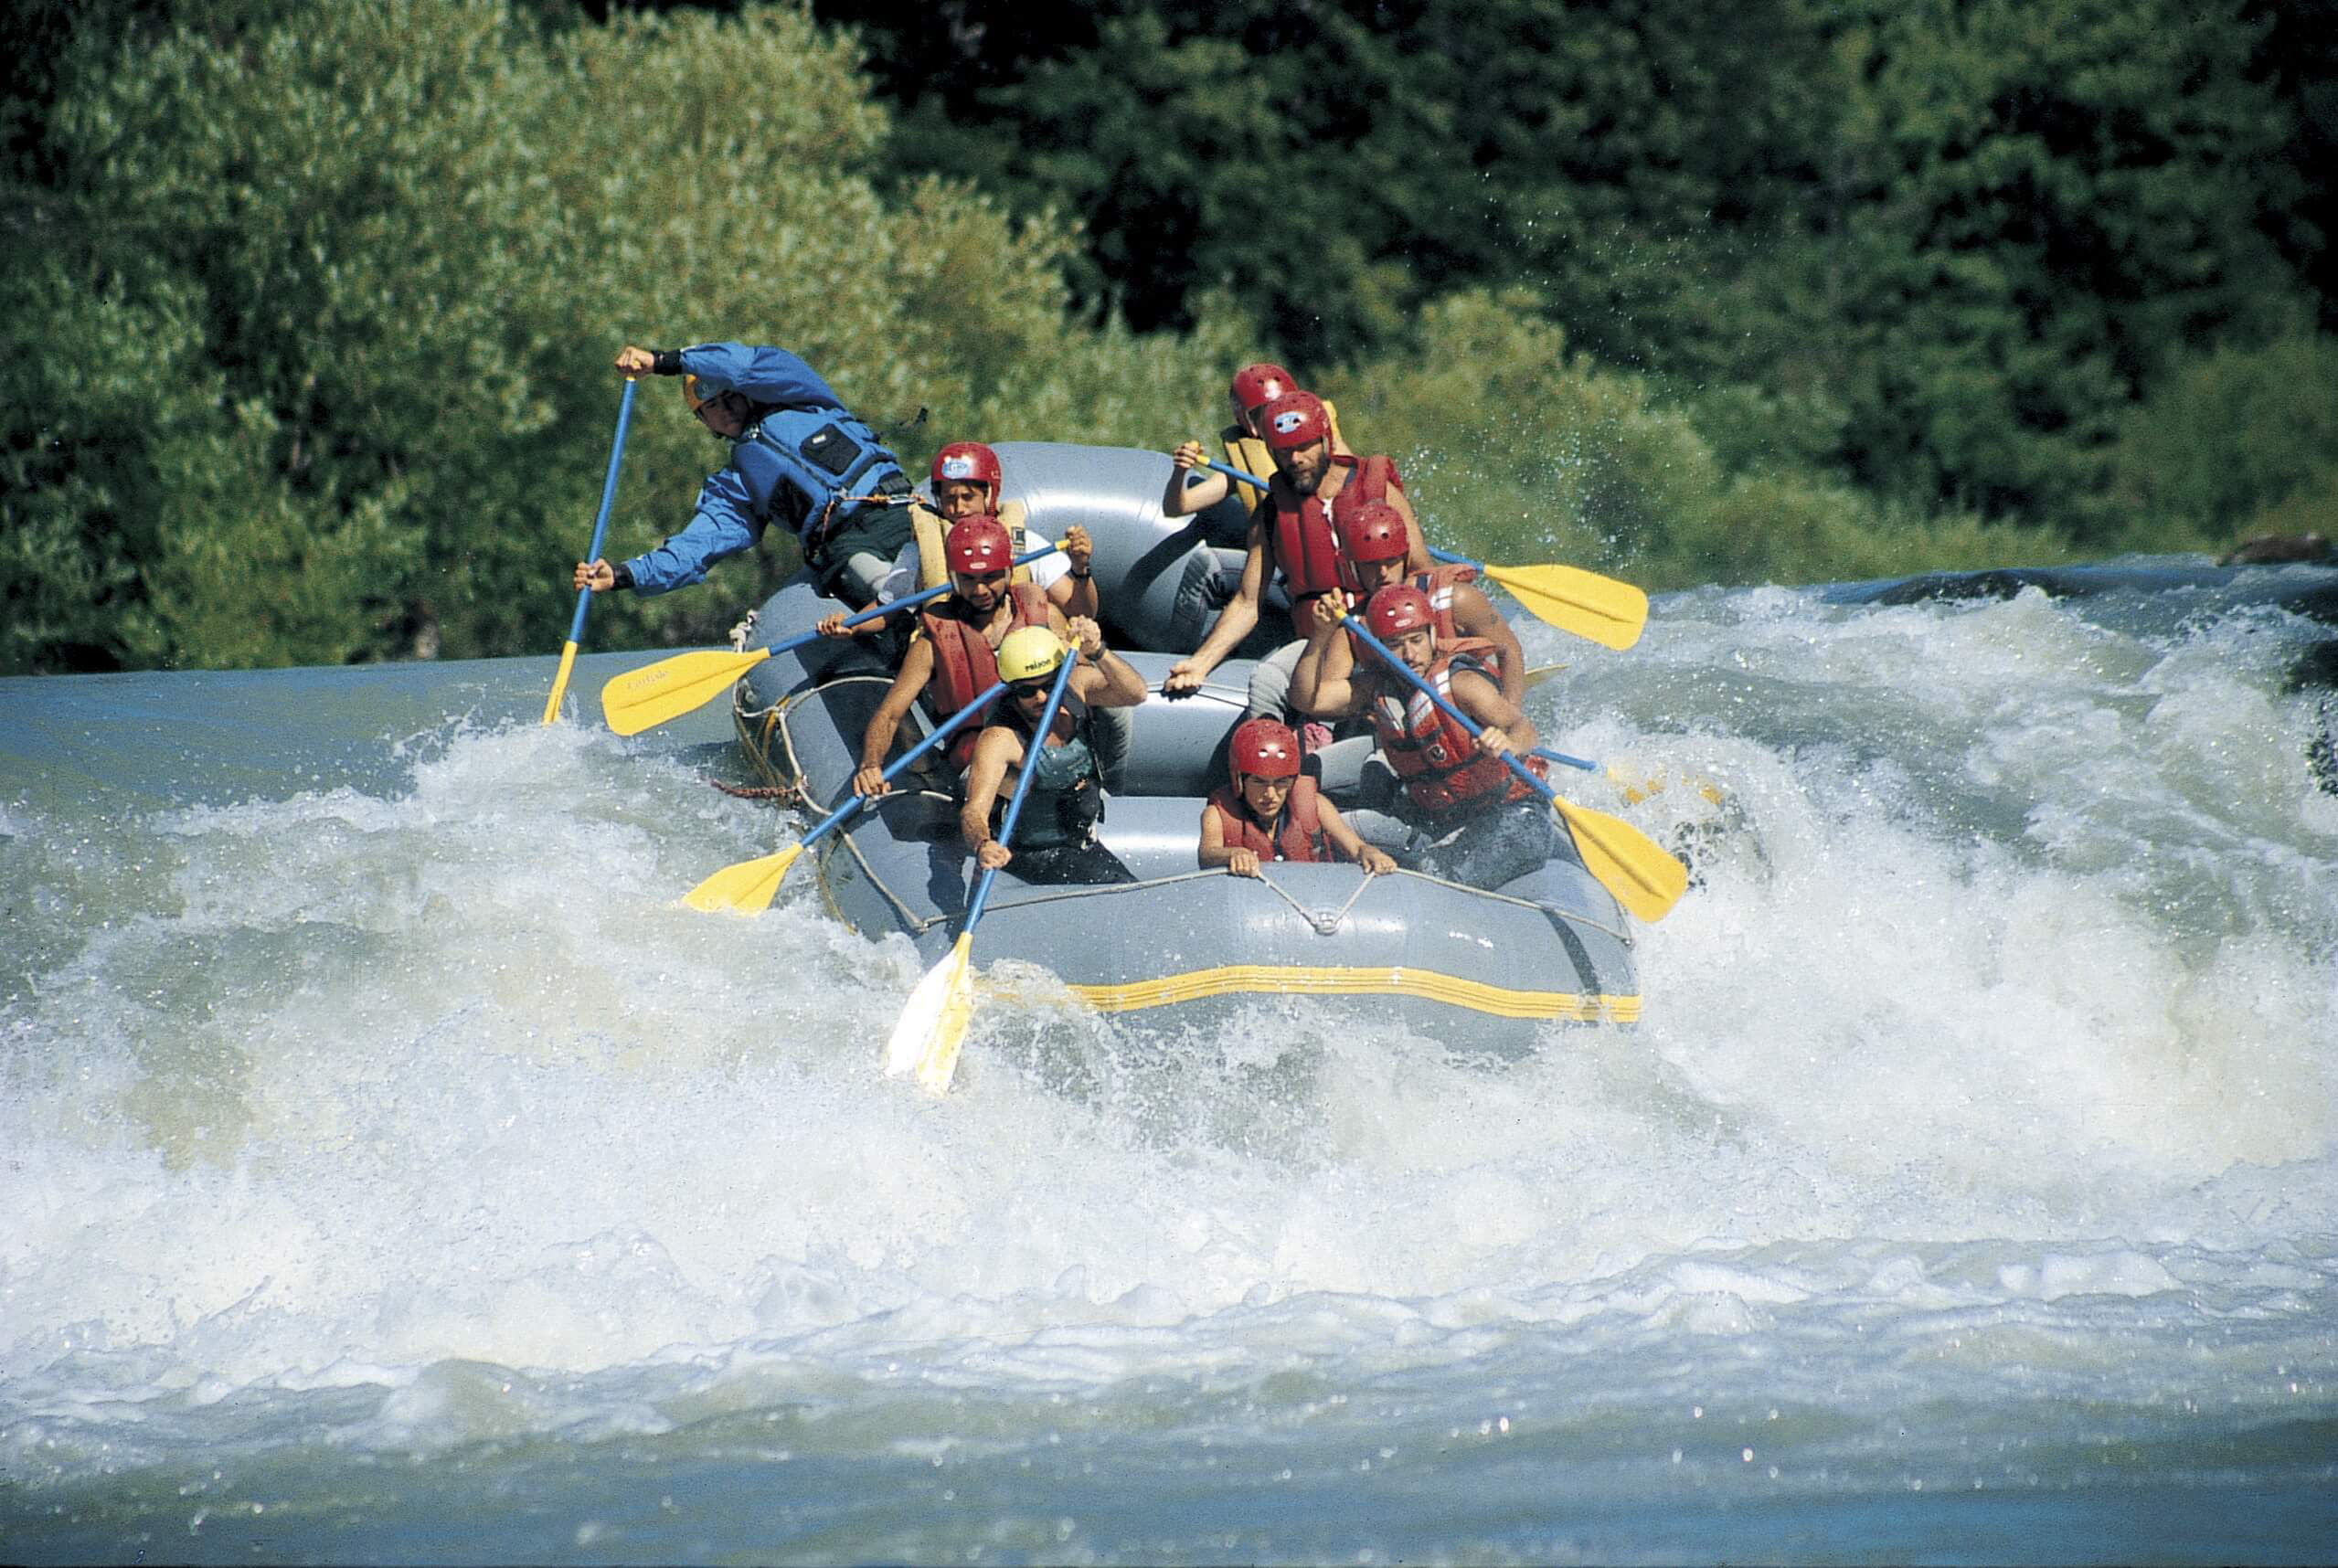 Rafting-rio-trancura-german-hevia-ACT136